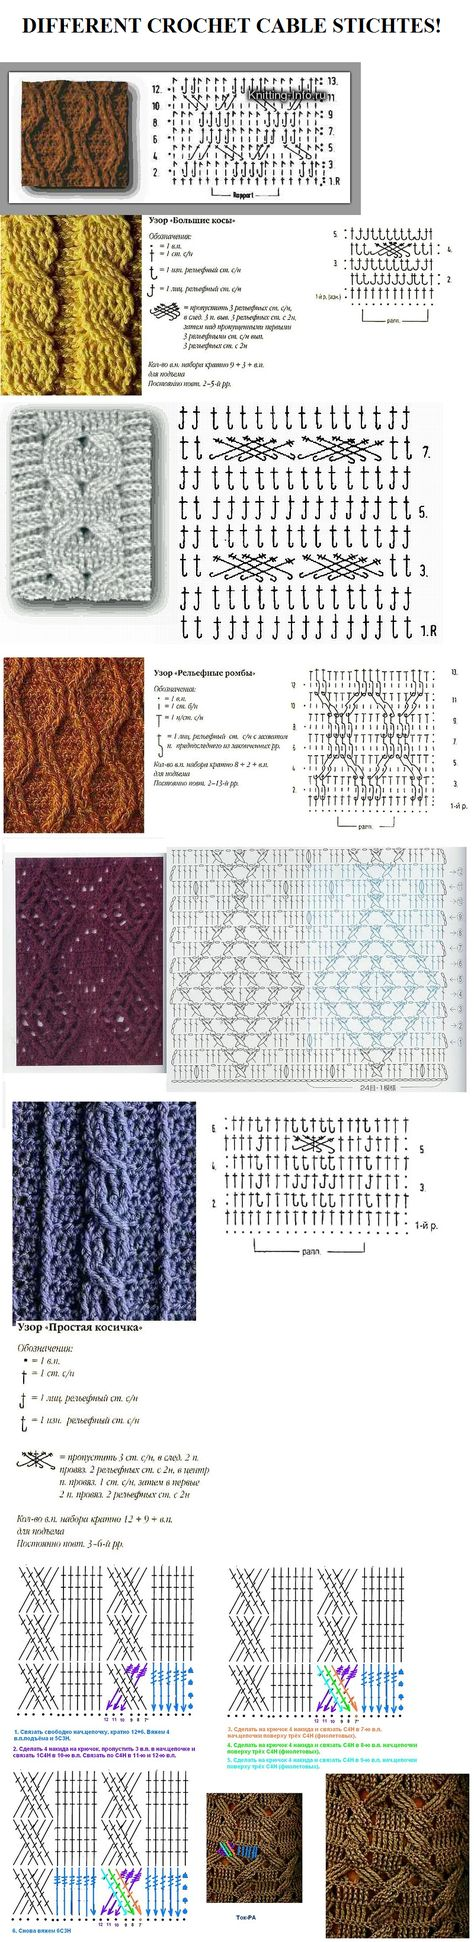 different crochet cable stitches!